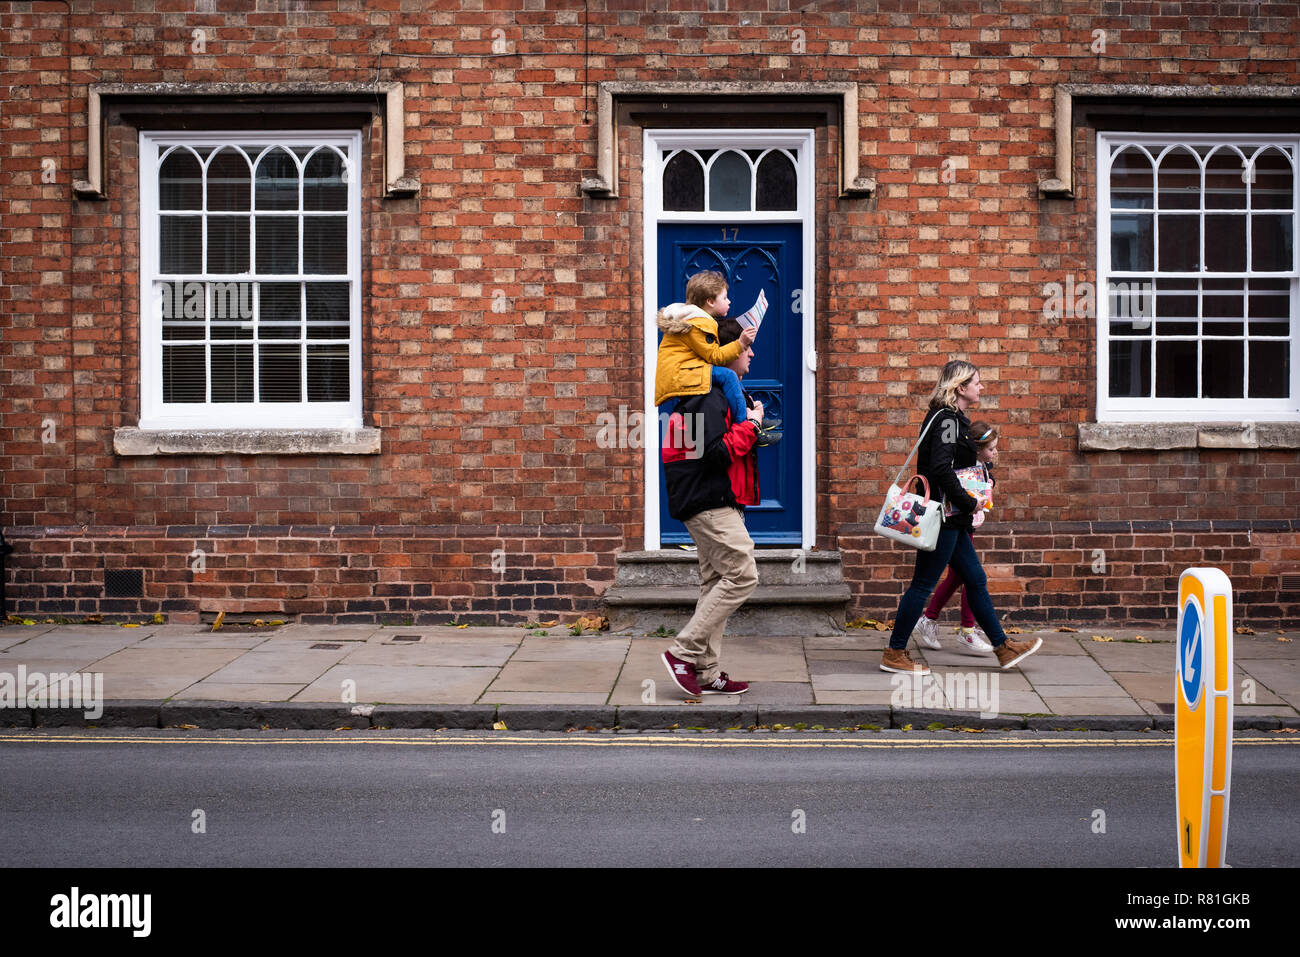 Family day out in Stratford upon Avon, UK Stock Photo